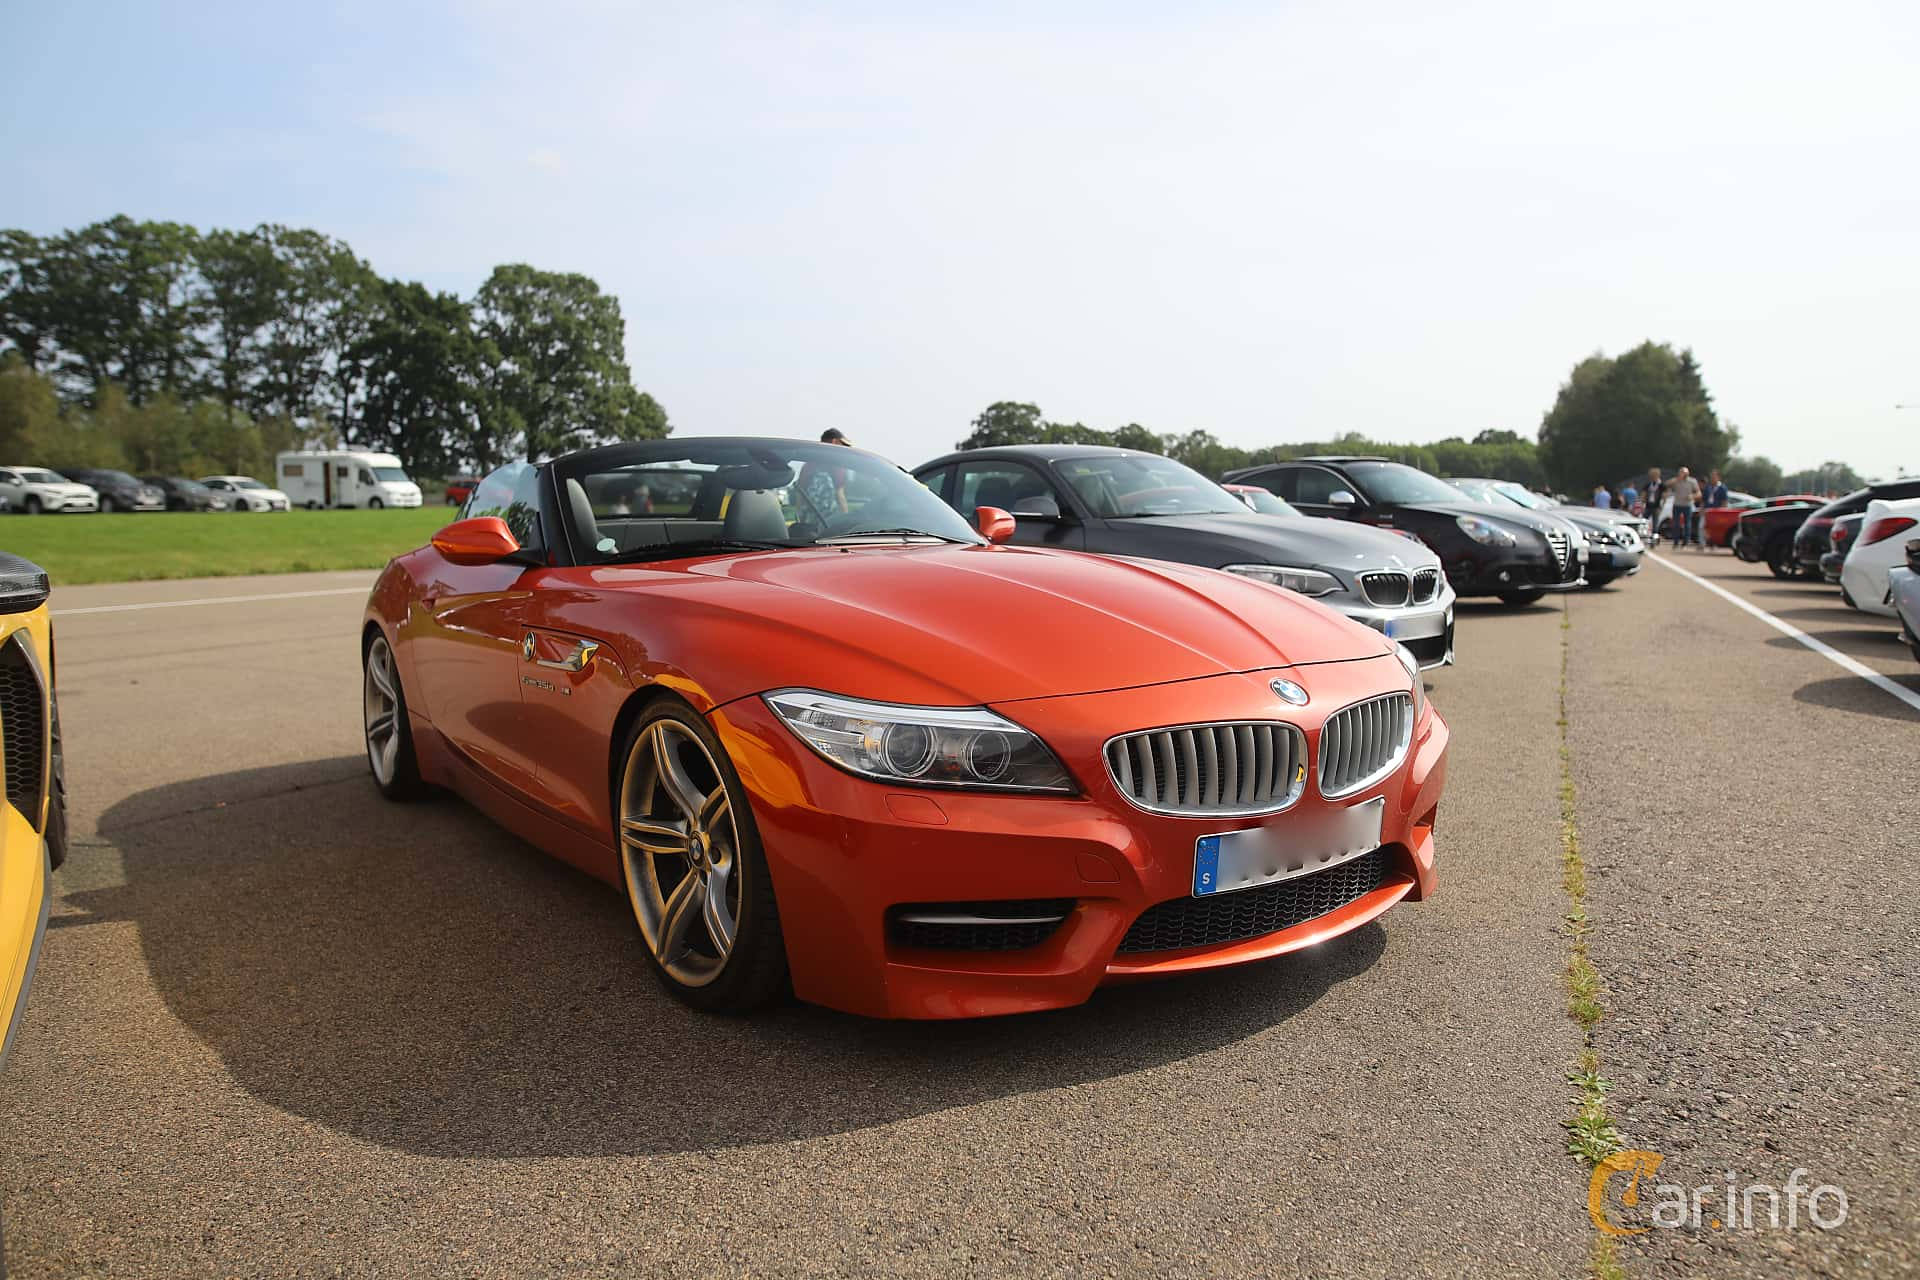 BMW Z4 sDrive35is  DCT, 340hp, 2015 at Autoropa Racing day Knutstorp 2019